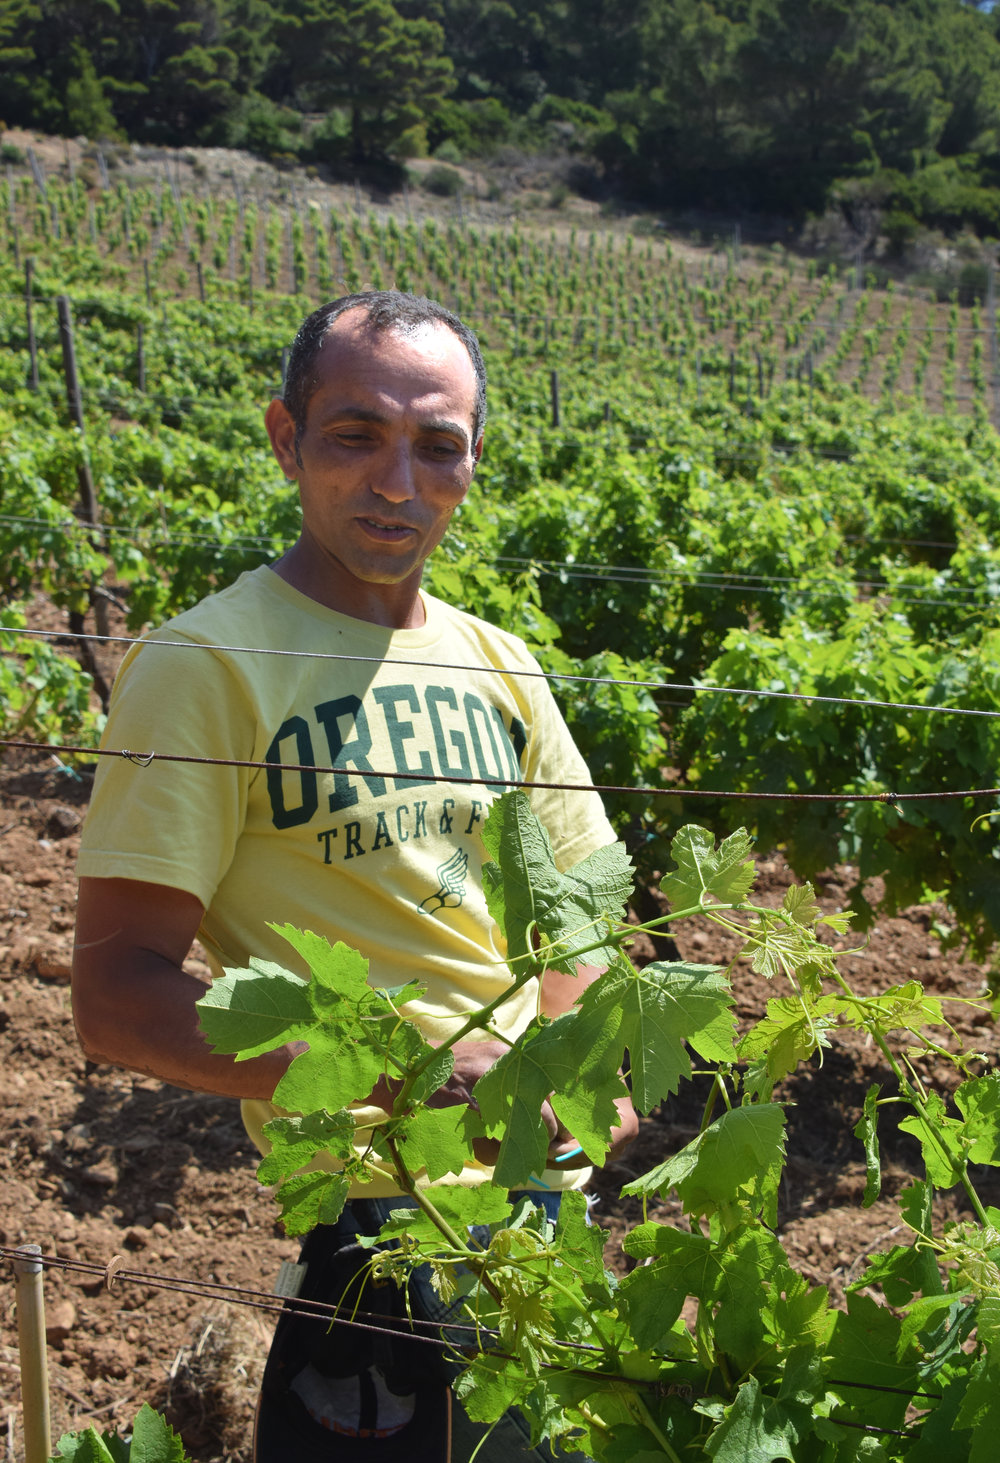 To protect the grapes from sunlight, Khatoui Chargui is using his learned skills in canopy management to re-trellis the vines.